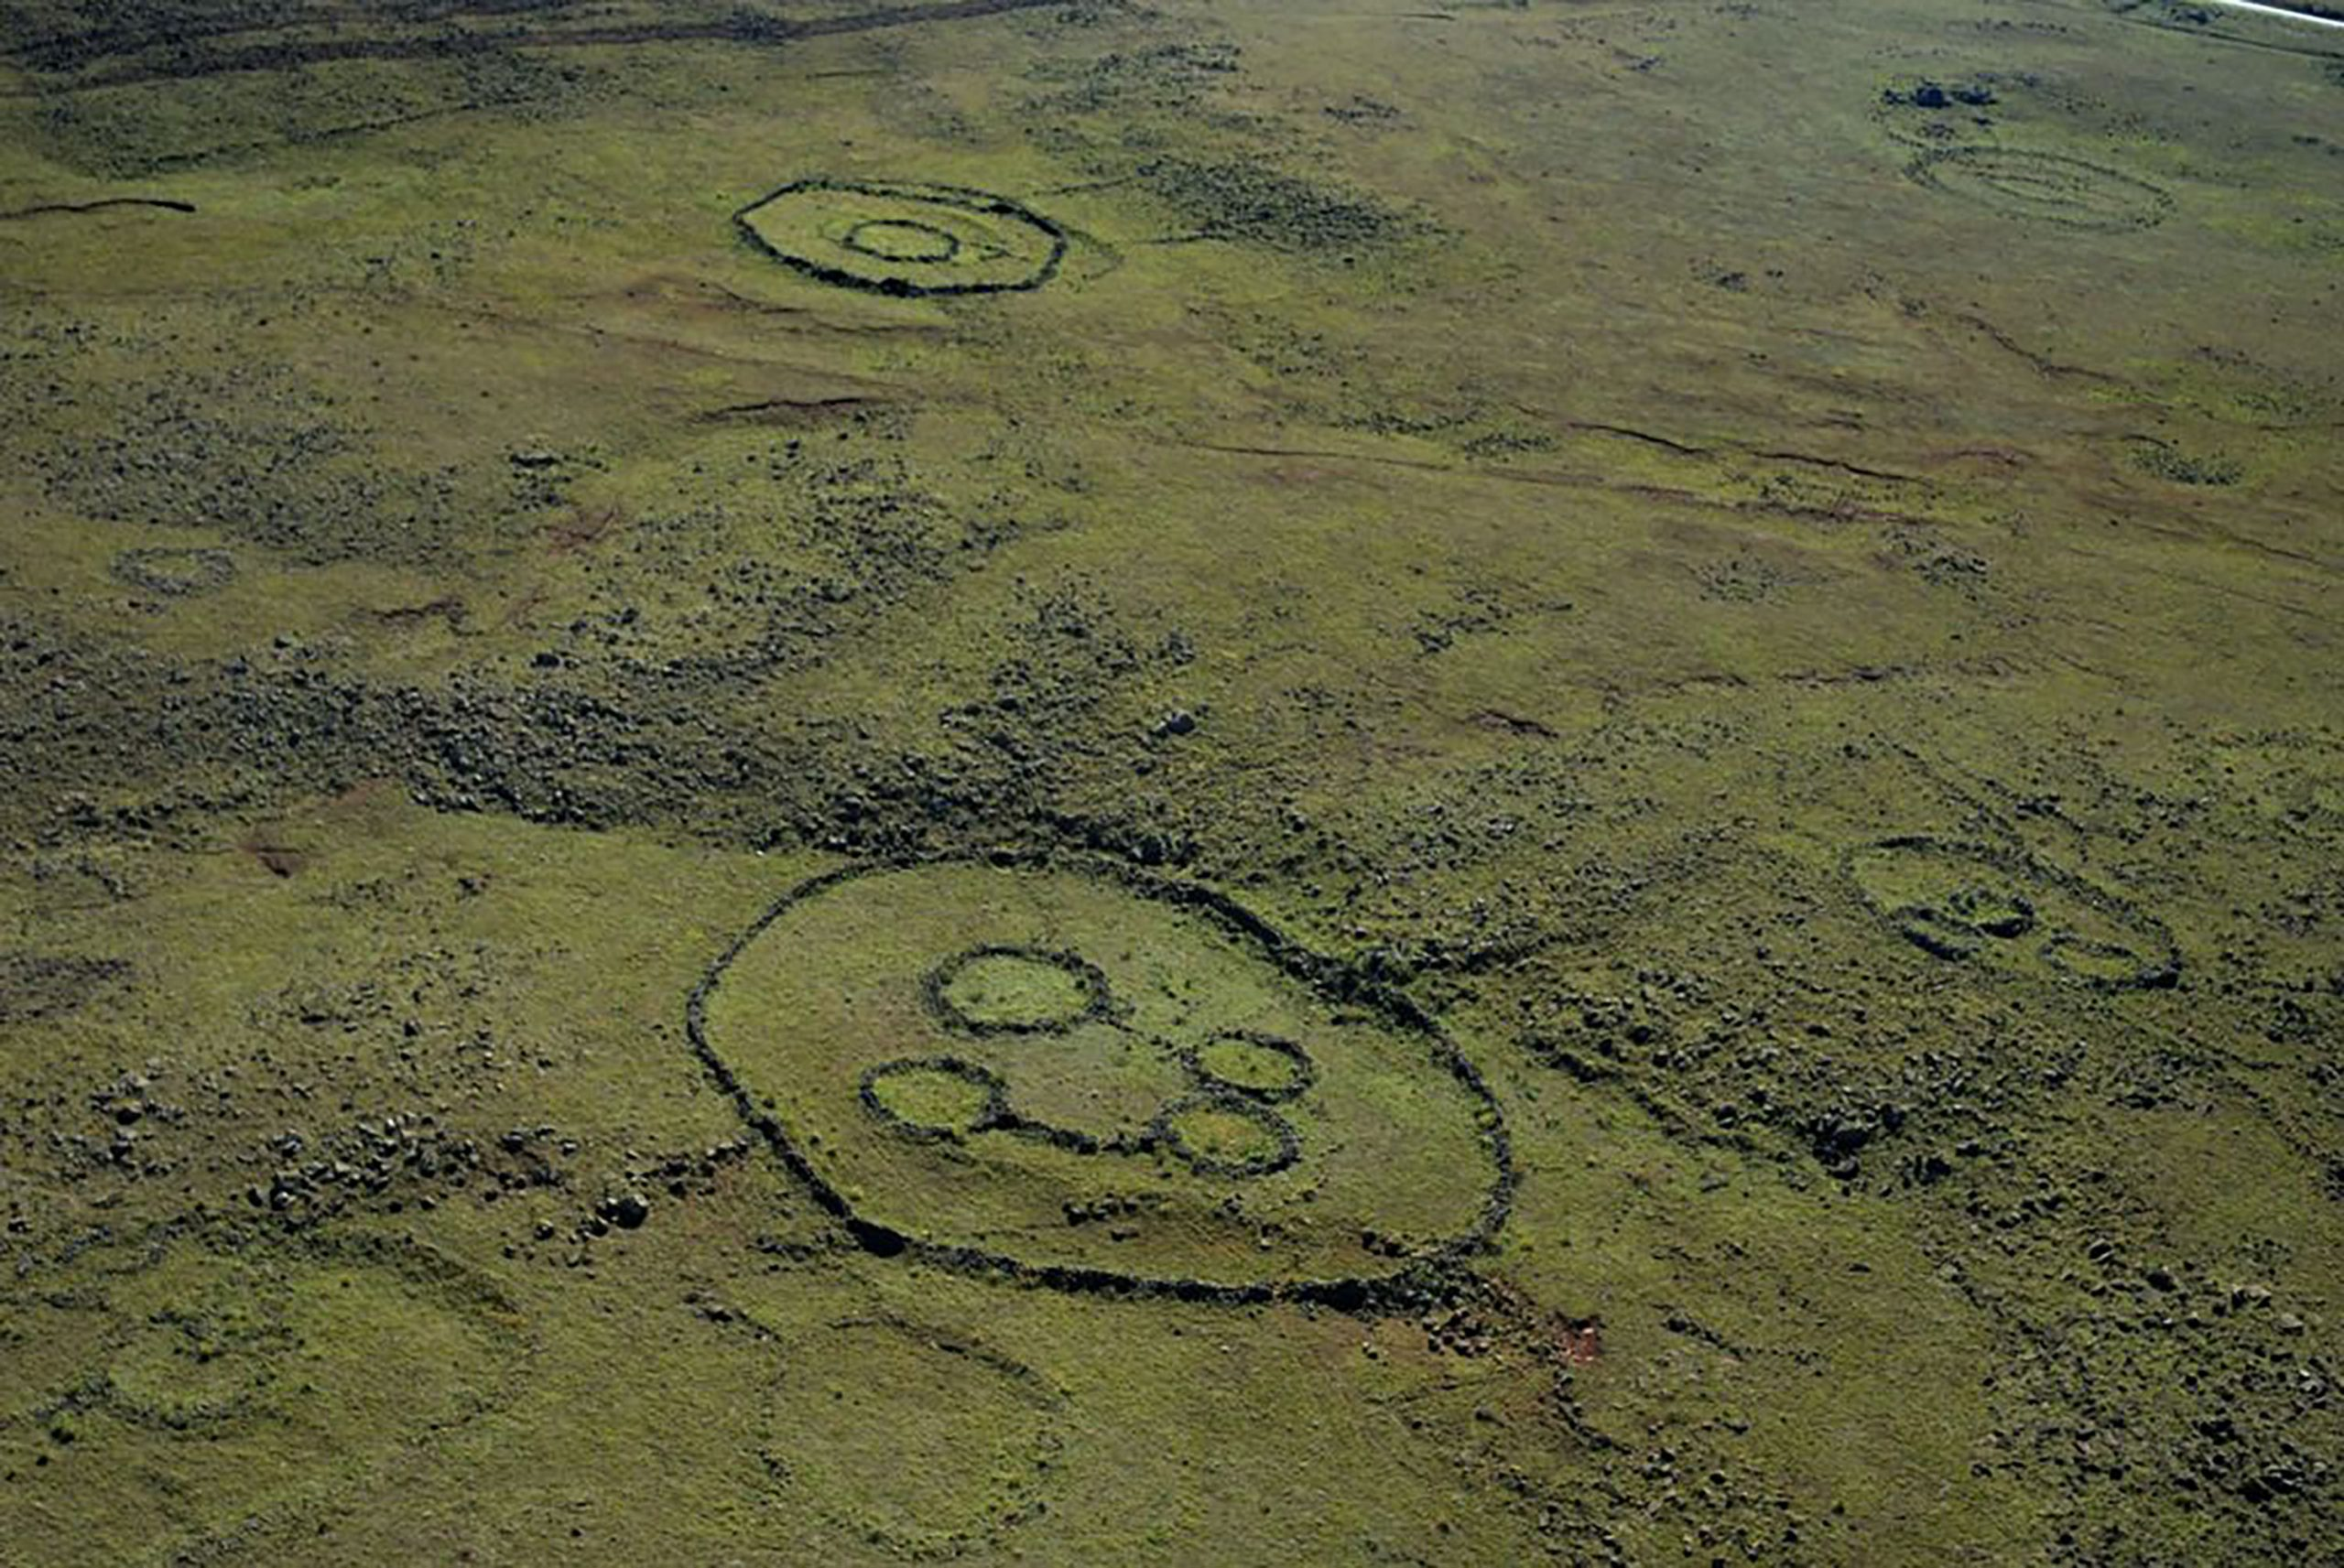 Undated: An aerial photo showing the stone structures left behind by the Bokoni. (Photograph by Graeme Williams/Wits University)